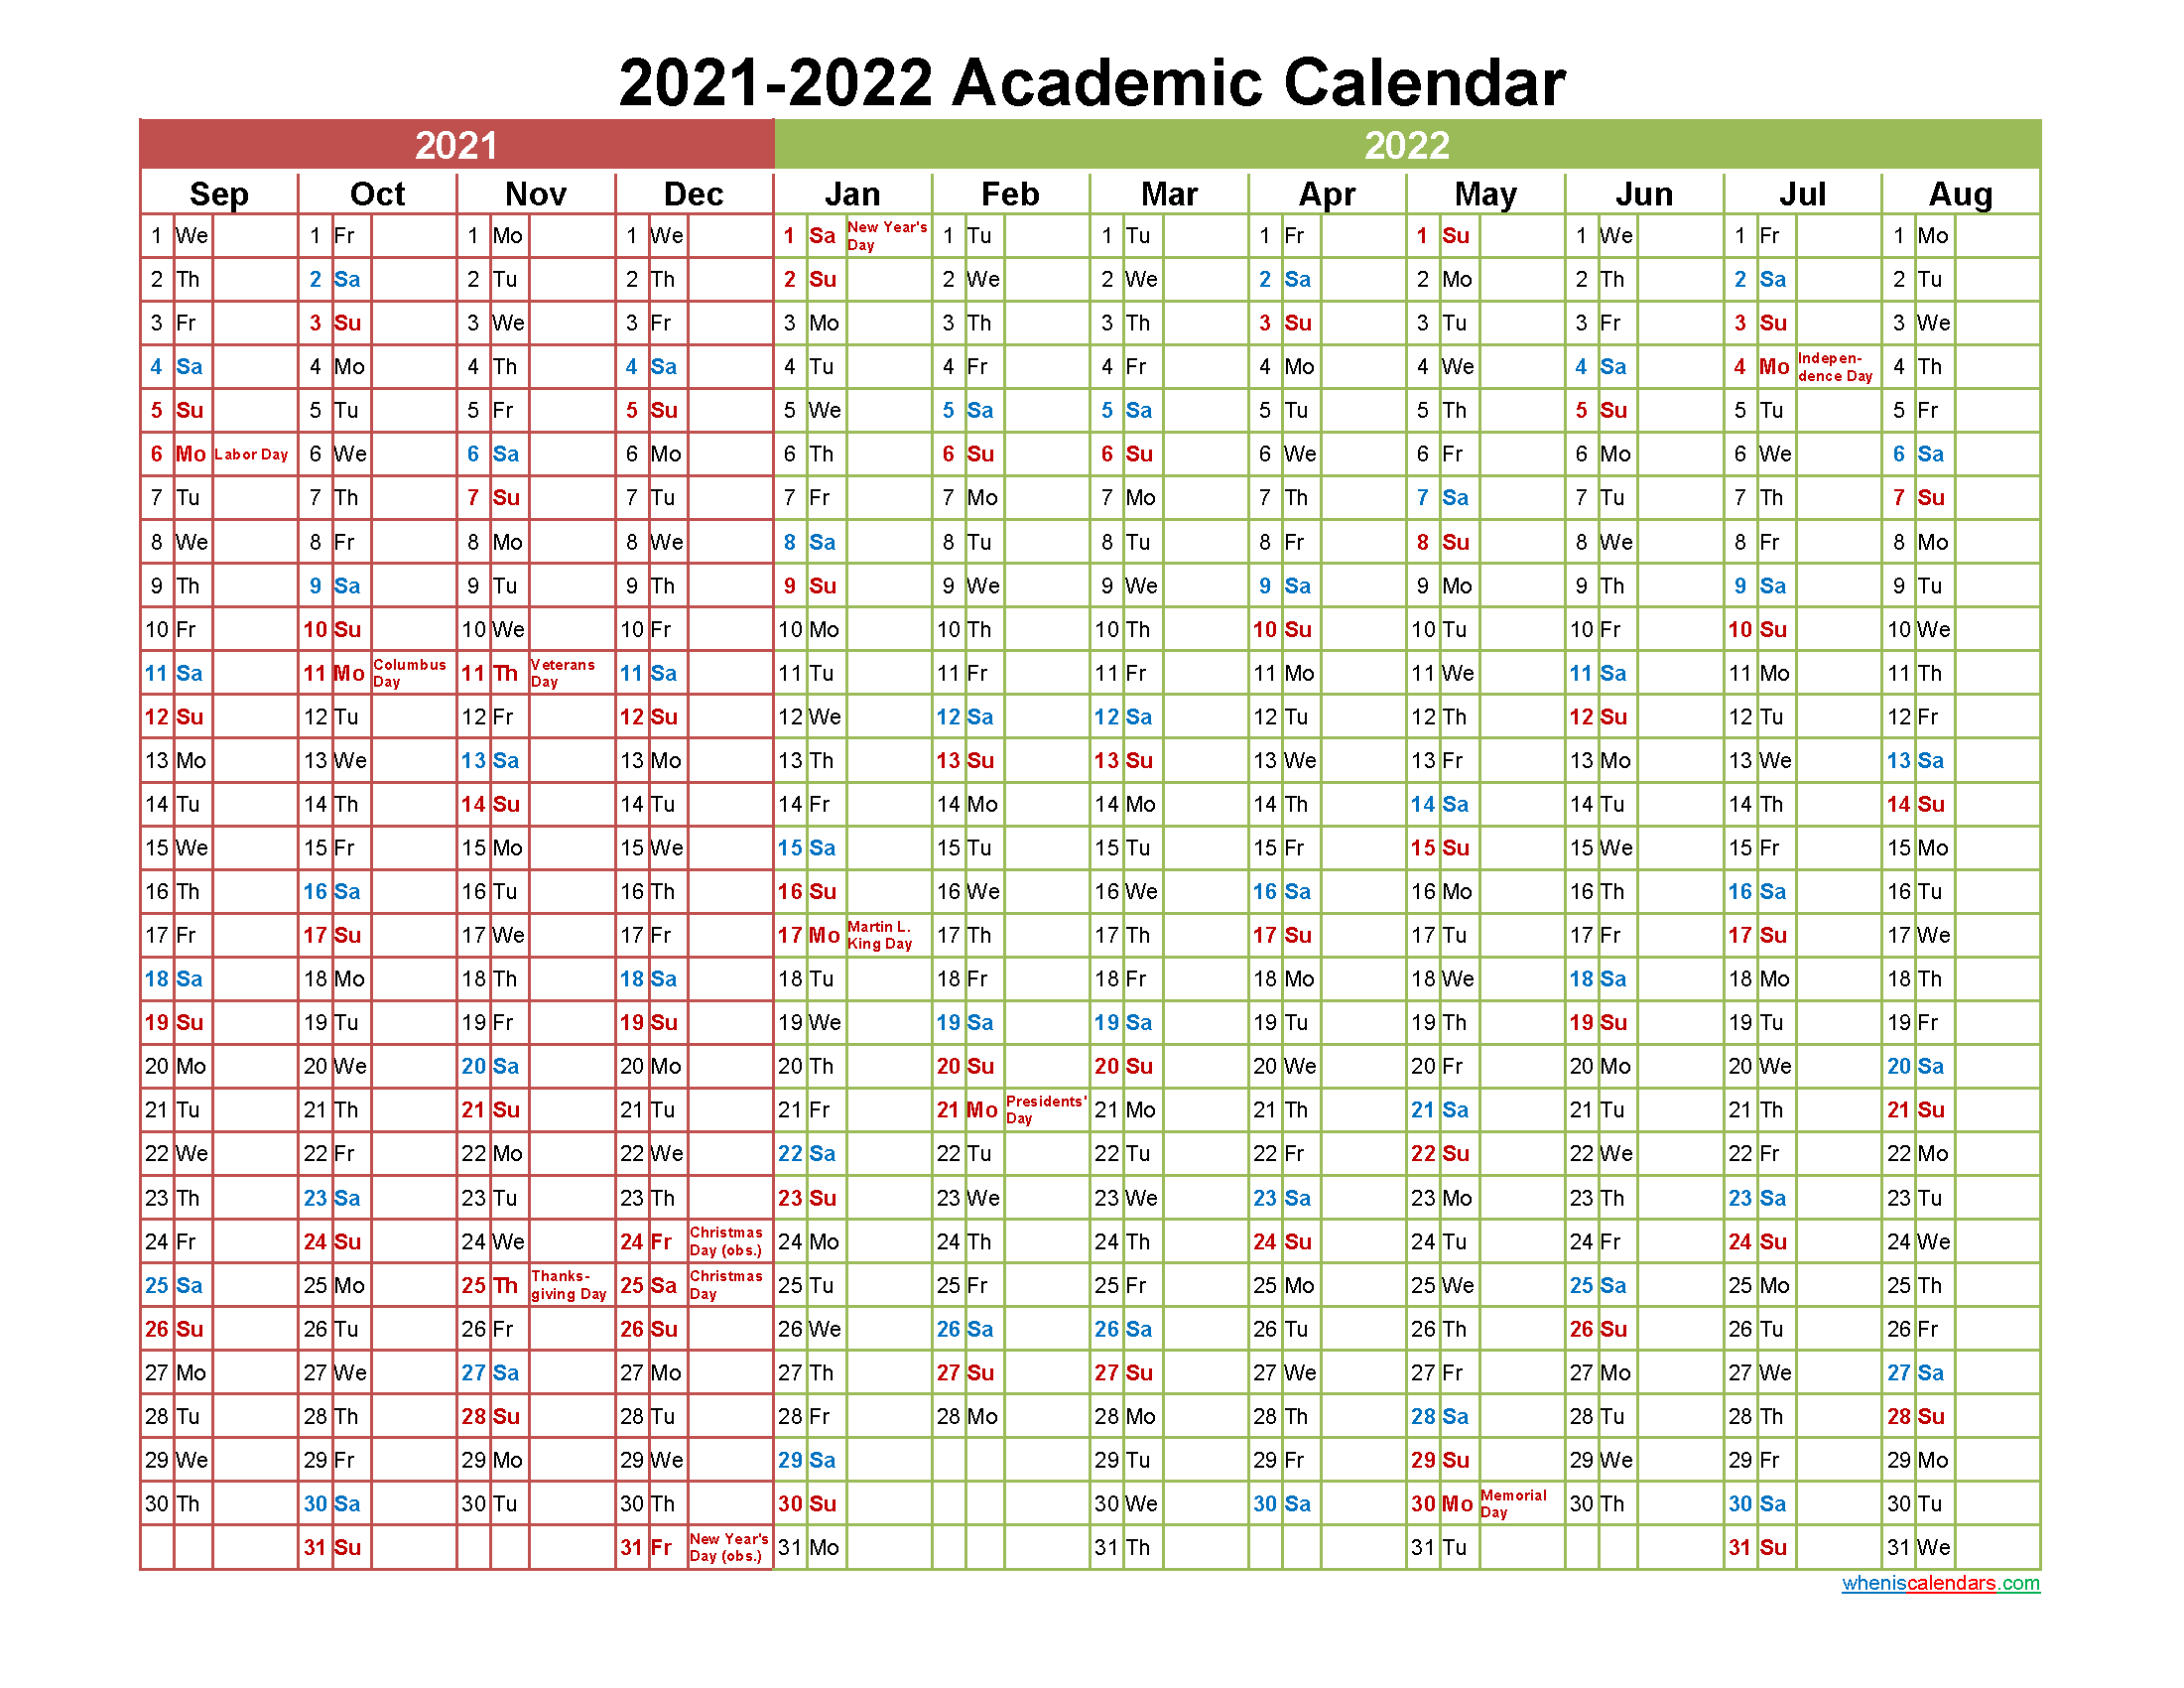 Academic Calendar 2021 and 2022 Printable (Landscape ...